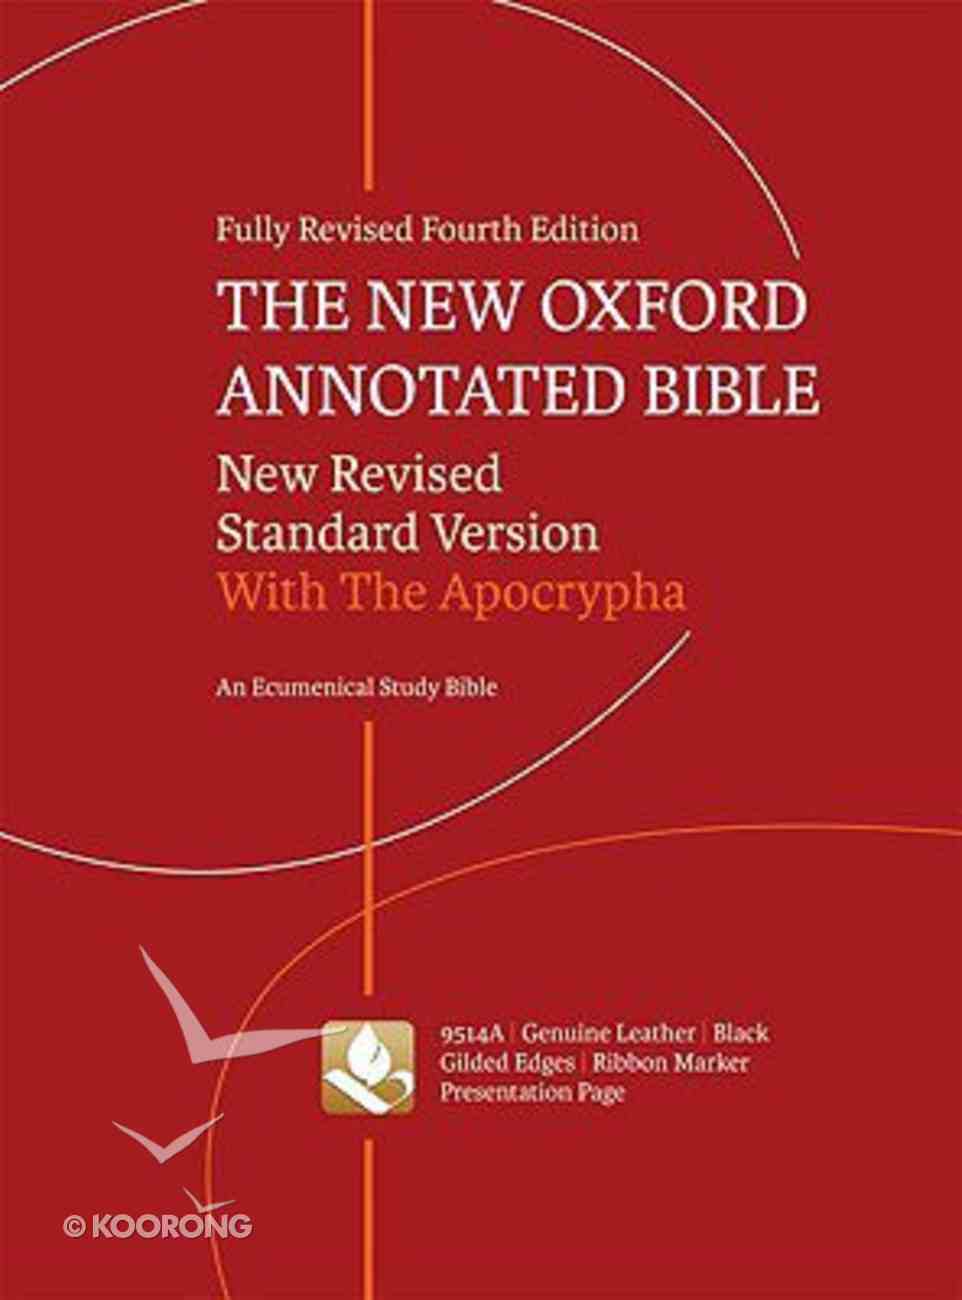 NRSV New Oxford Annotated Bible Black Indexed (4th Edition) Genuine Leather